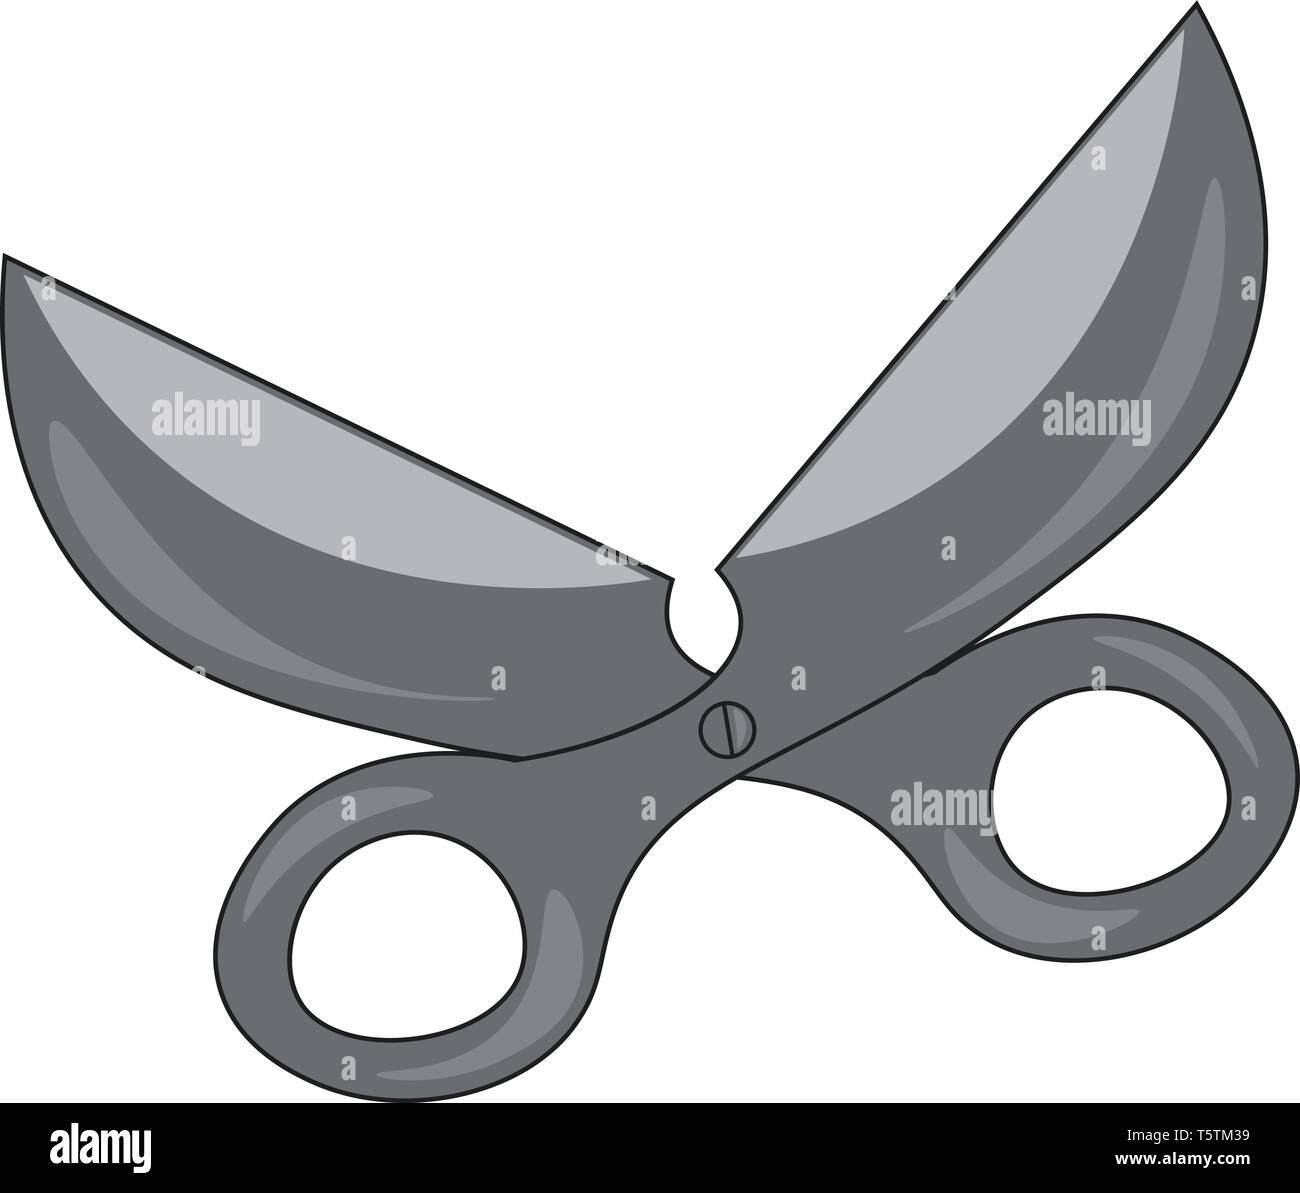 Big open scissors grey in color and possess a white button at the intersecting point of the two flat and sharp blades vector color drawing or illustra - Stock Image